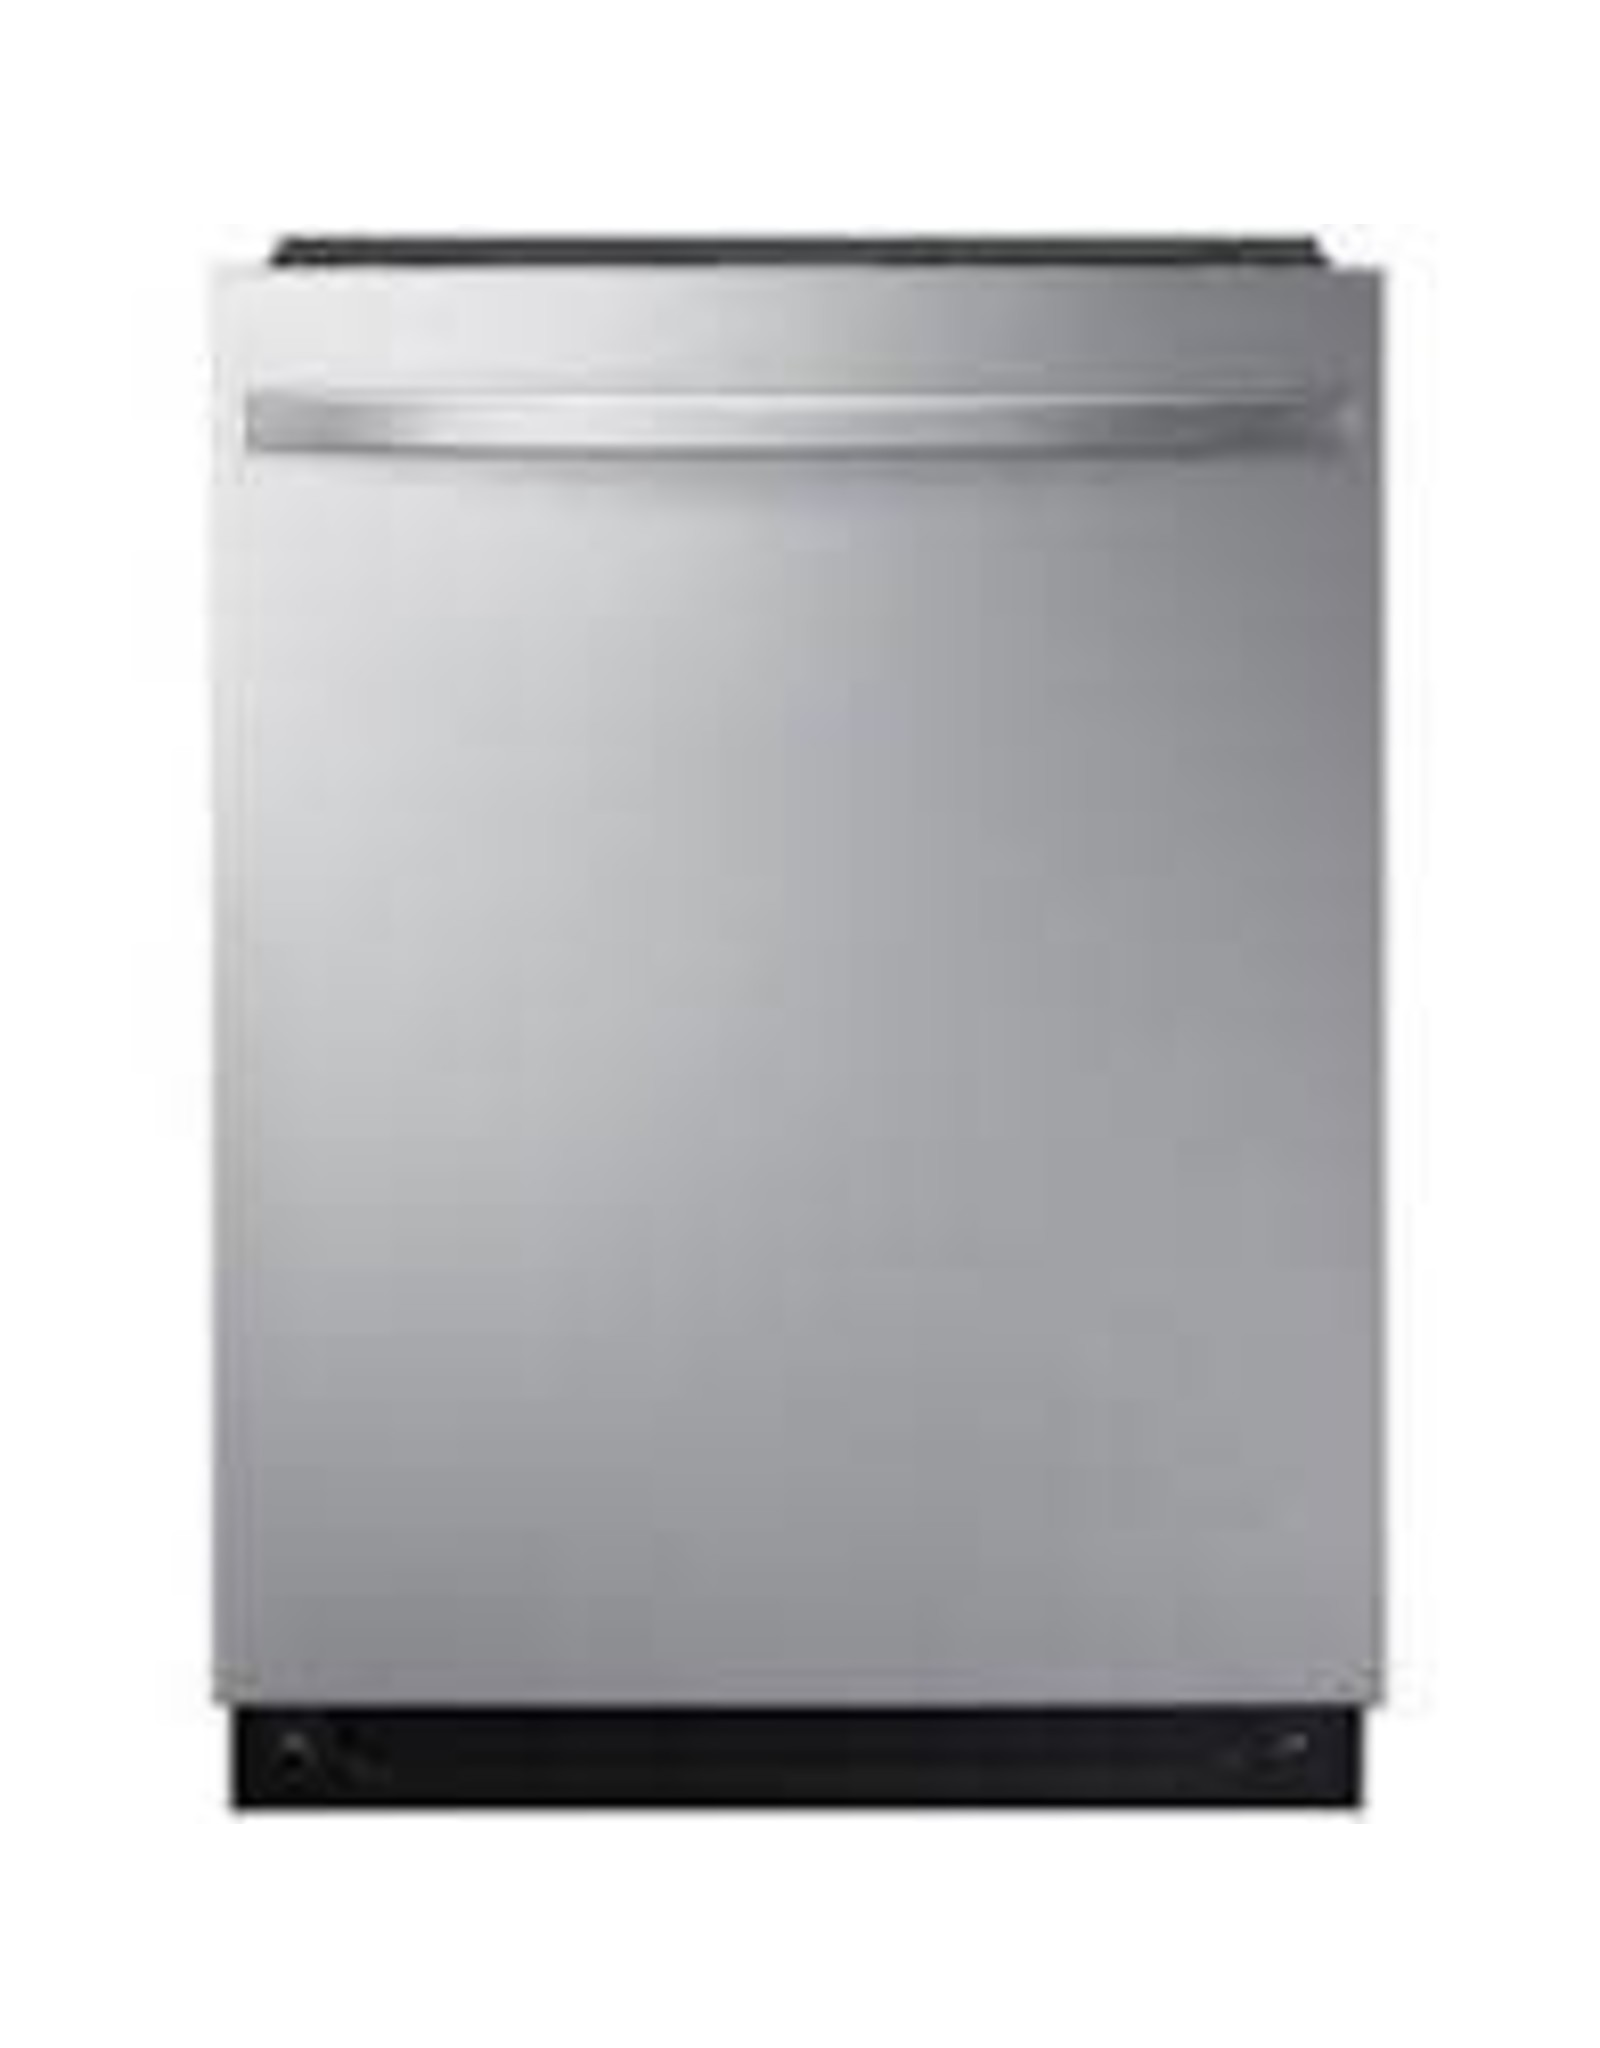 SAMSUNG DW80R7061US Samsung 24 in Top Control StormWash Tall Tub Dishwasher in Stainless Steel with AutoRelease Dry and 3rd Rack, 42 dBA